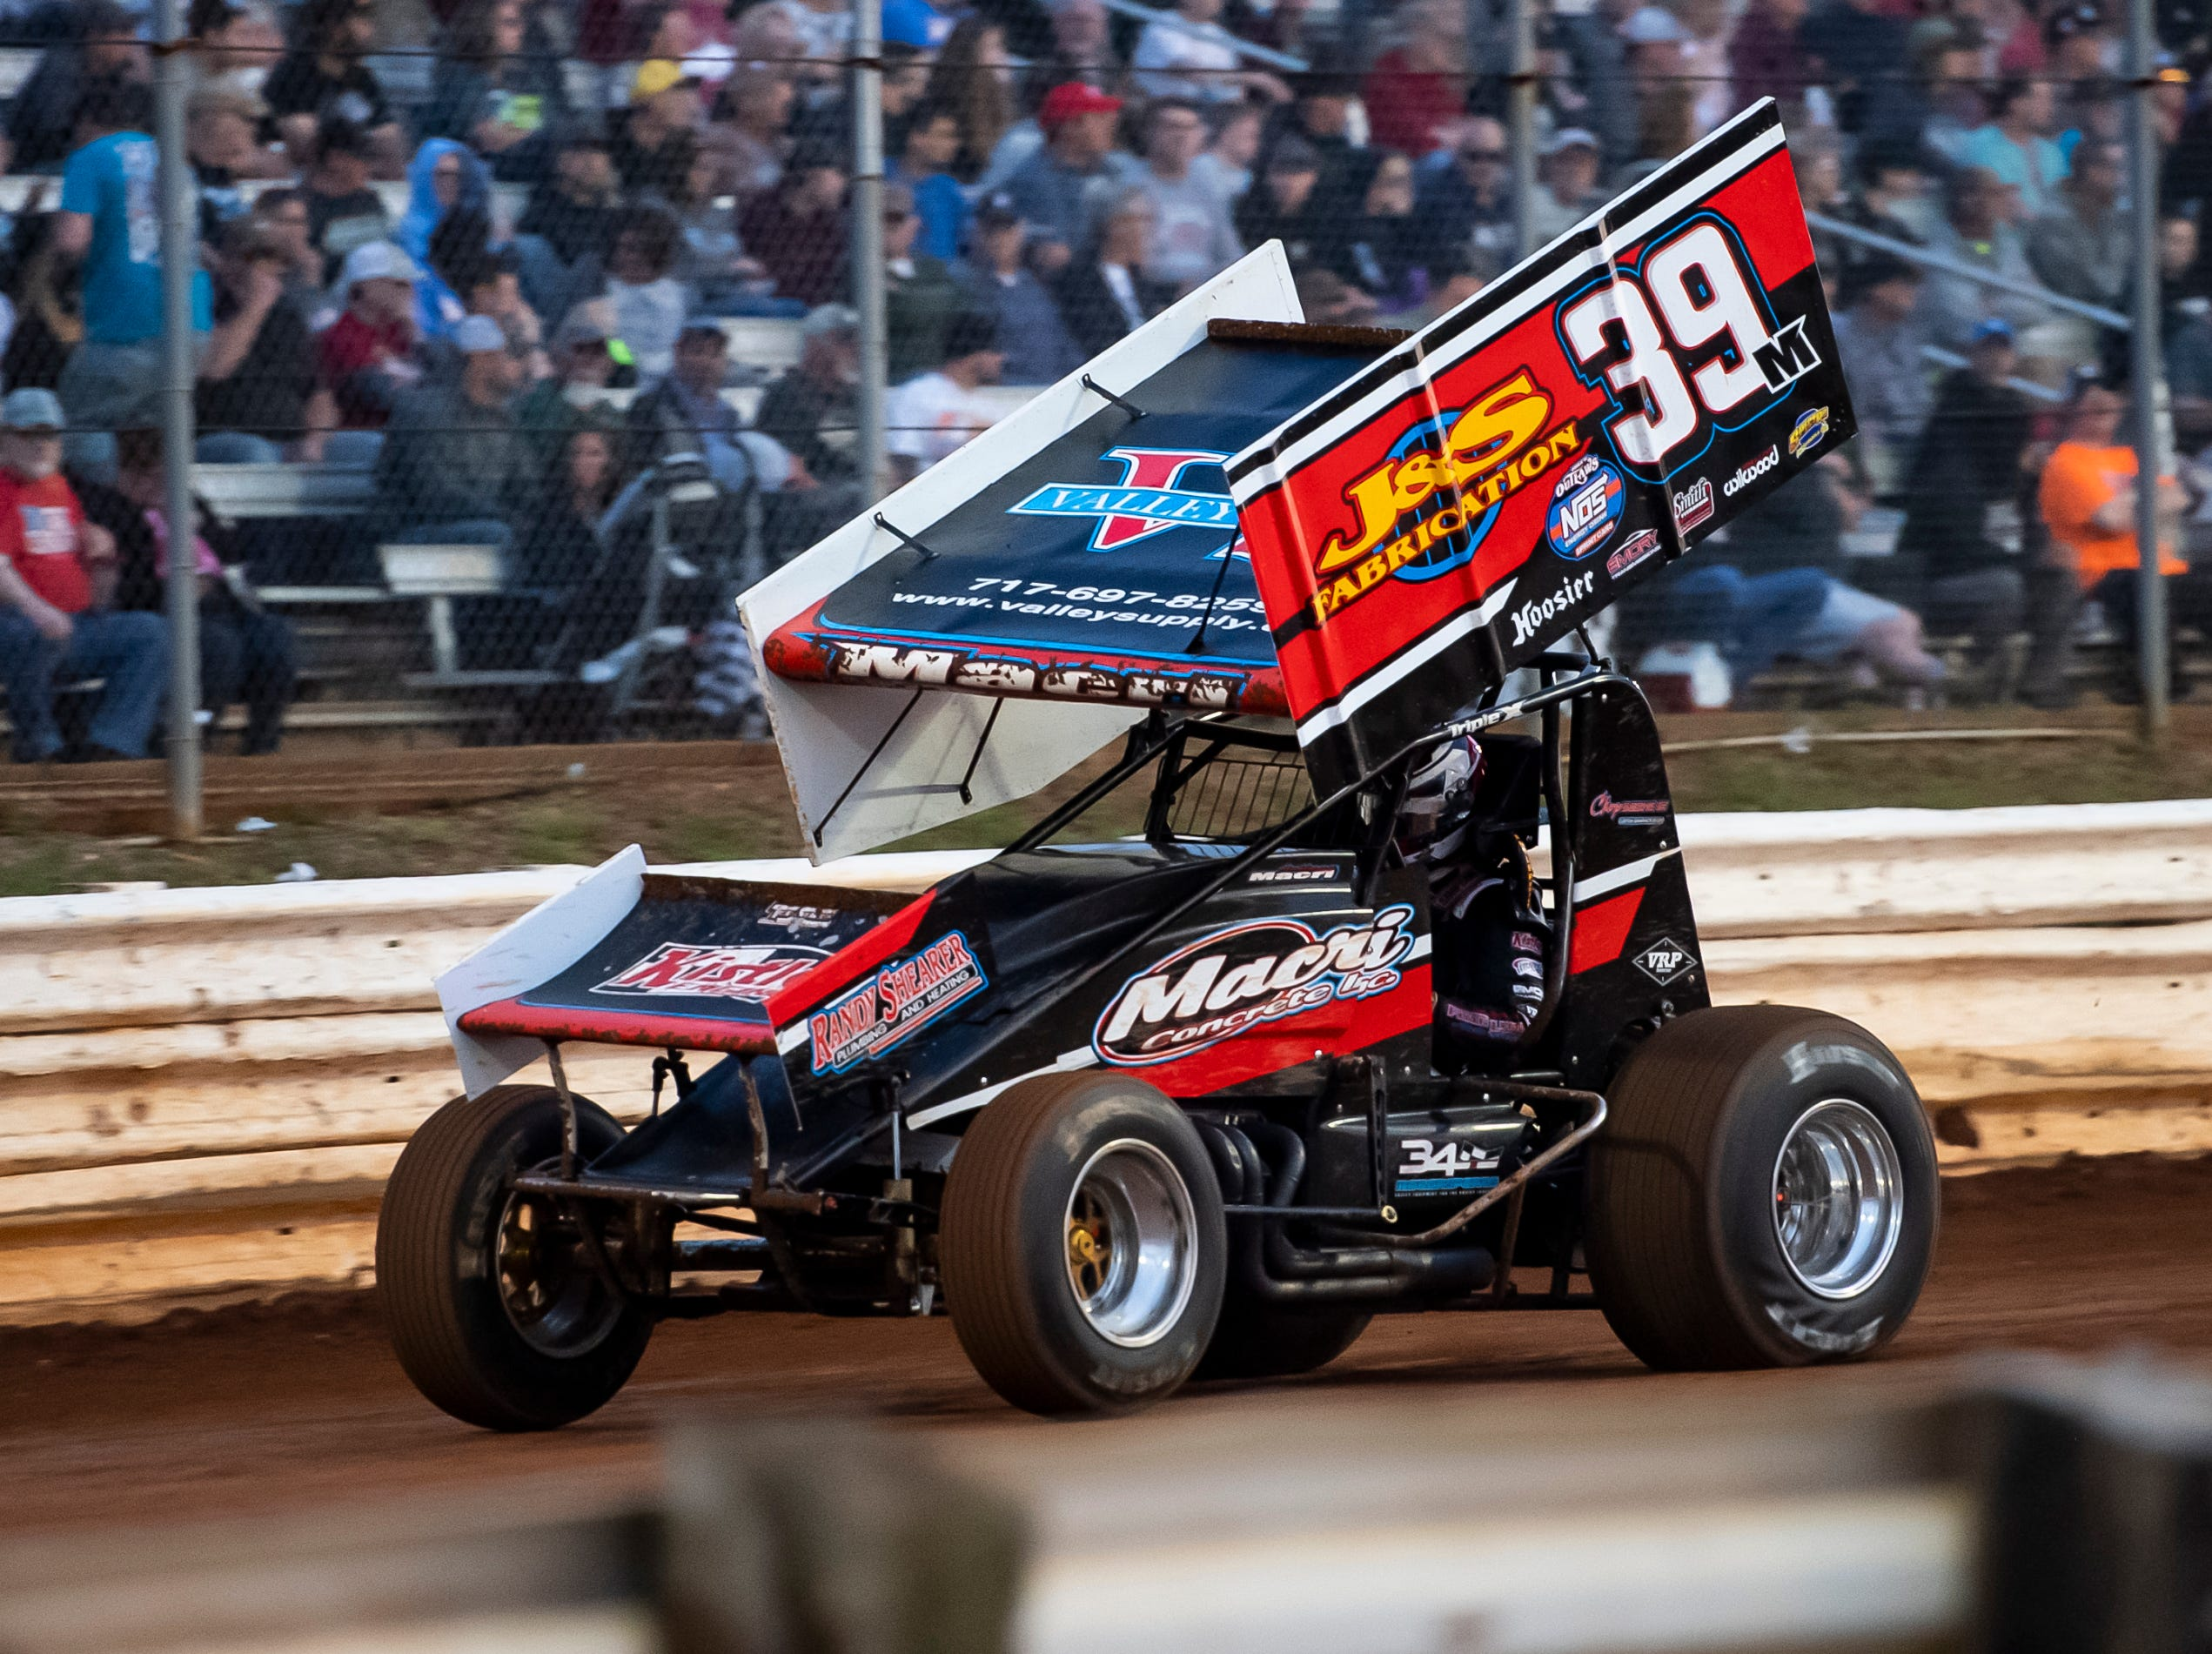 Anthony Marci races in the number 39M car during the World of Outlaws Gettysburg Clash at Lincoln Speedway in Abbottstown on Wednesday, May 15, 2019.